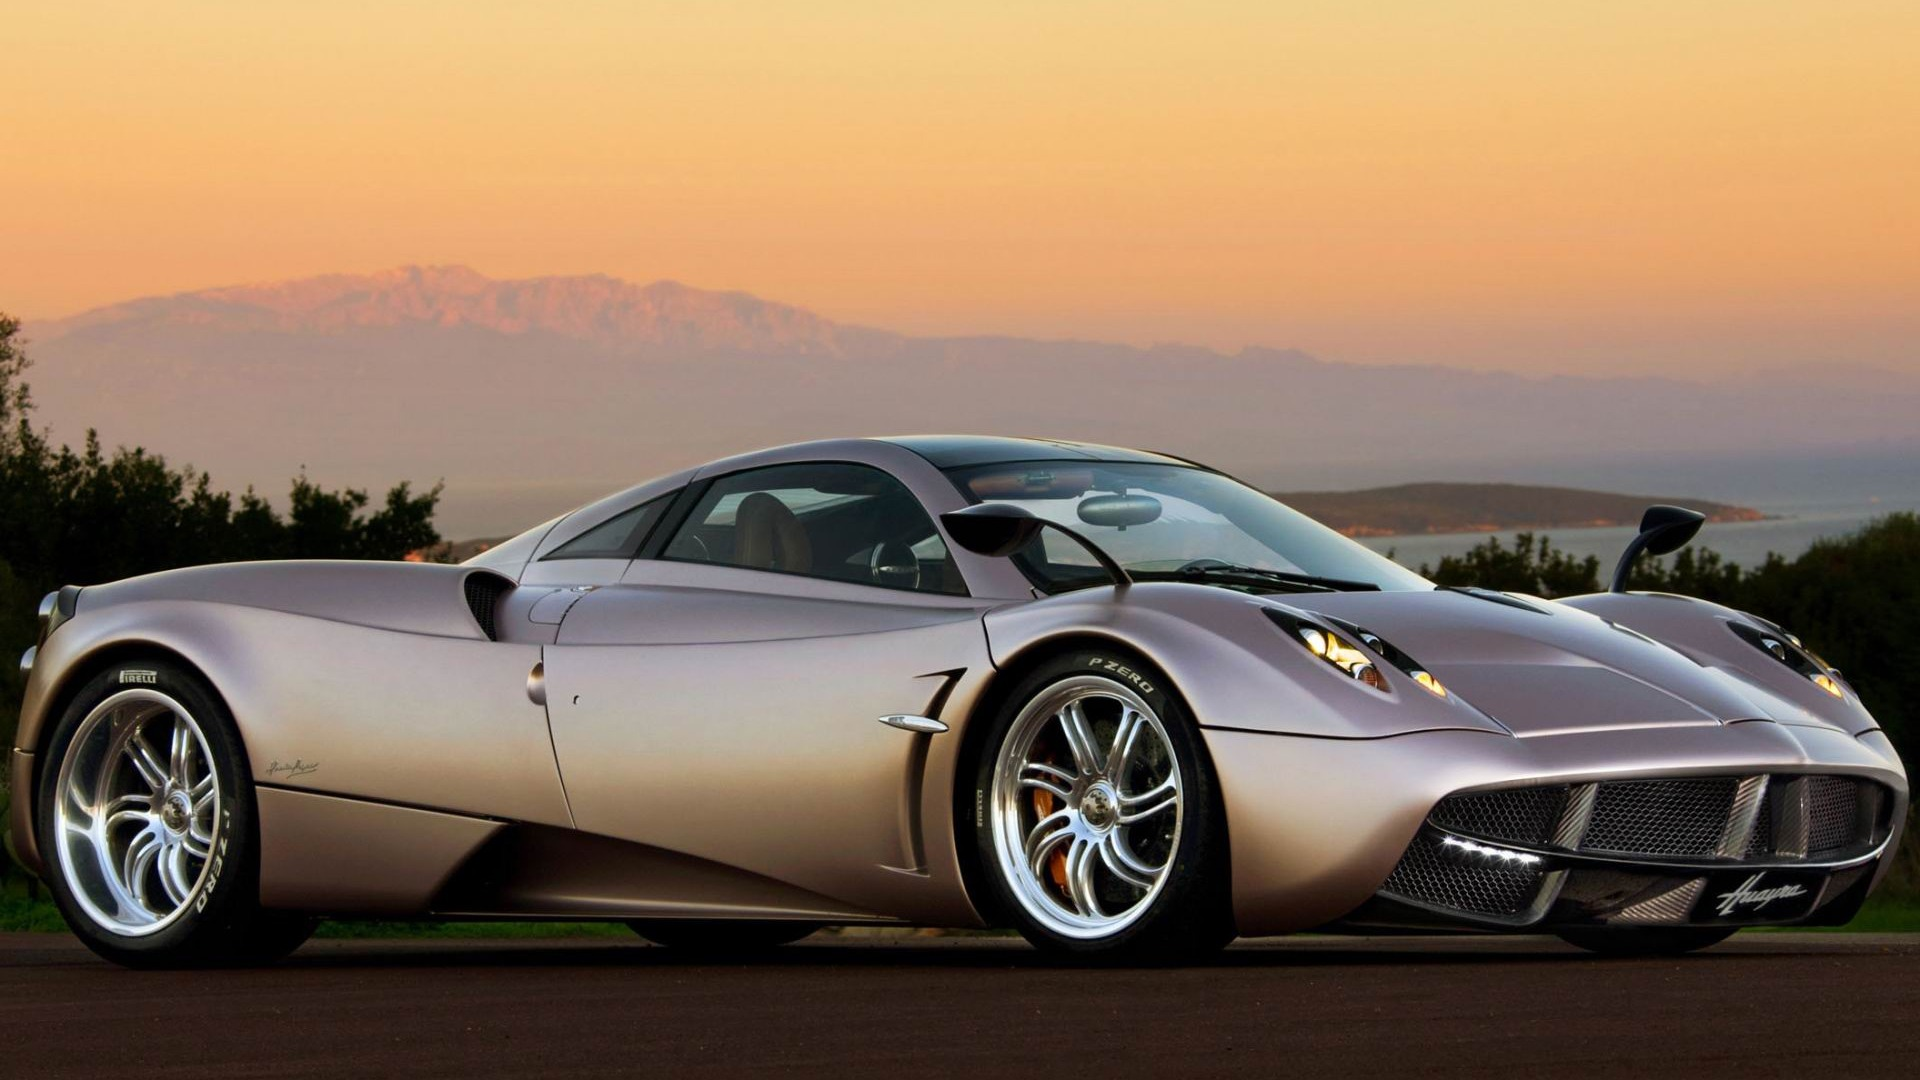 Pagani Huayra Sunset 2012 Luxury Car Hd Wallpaper Preview